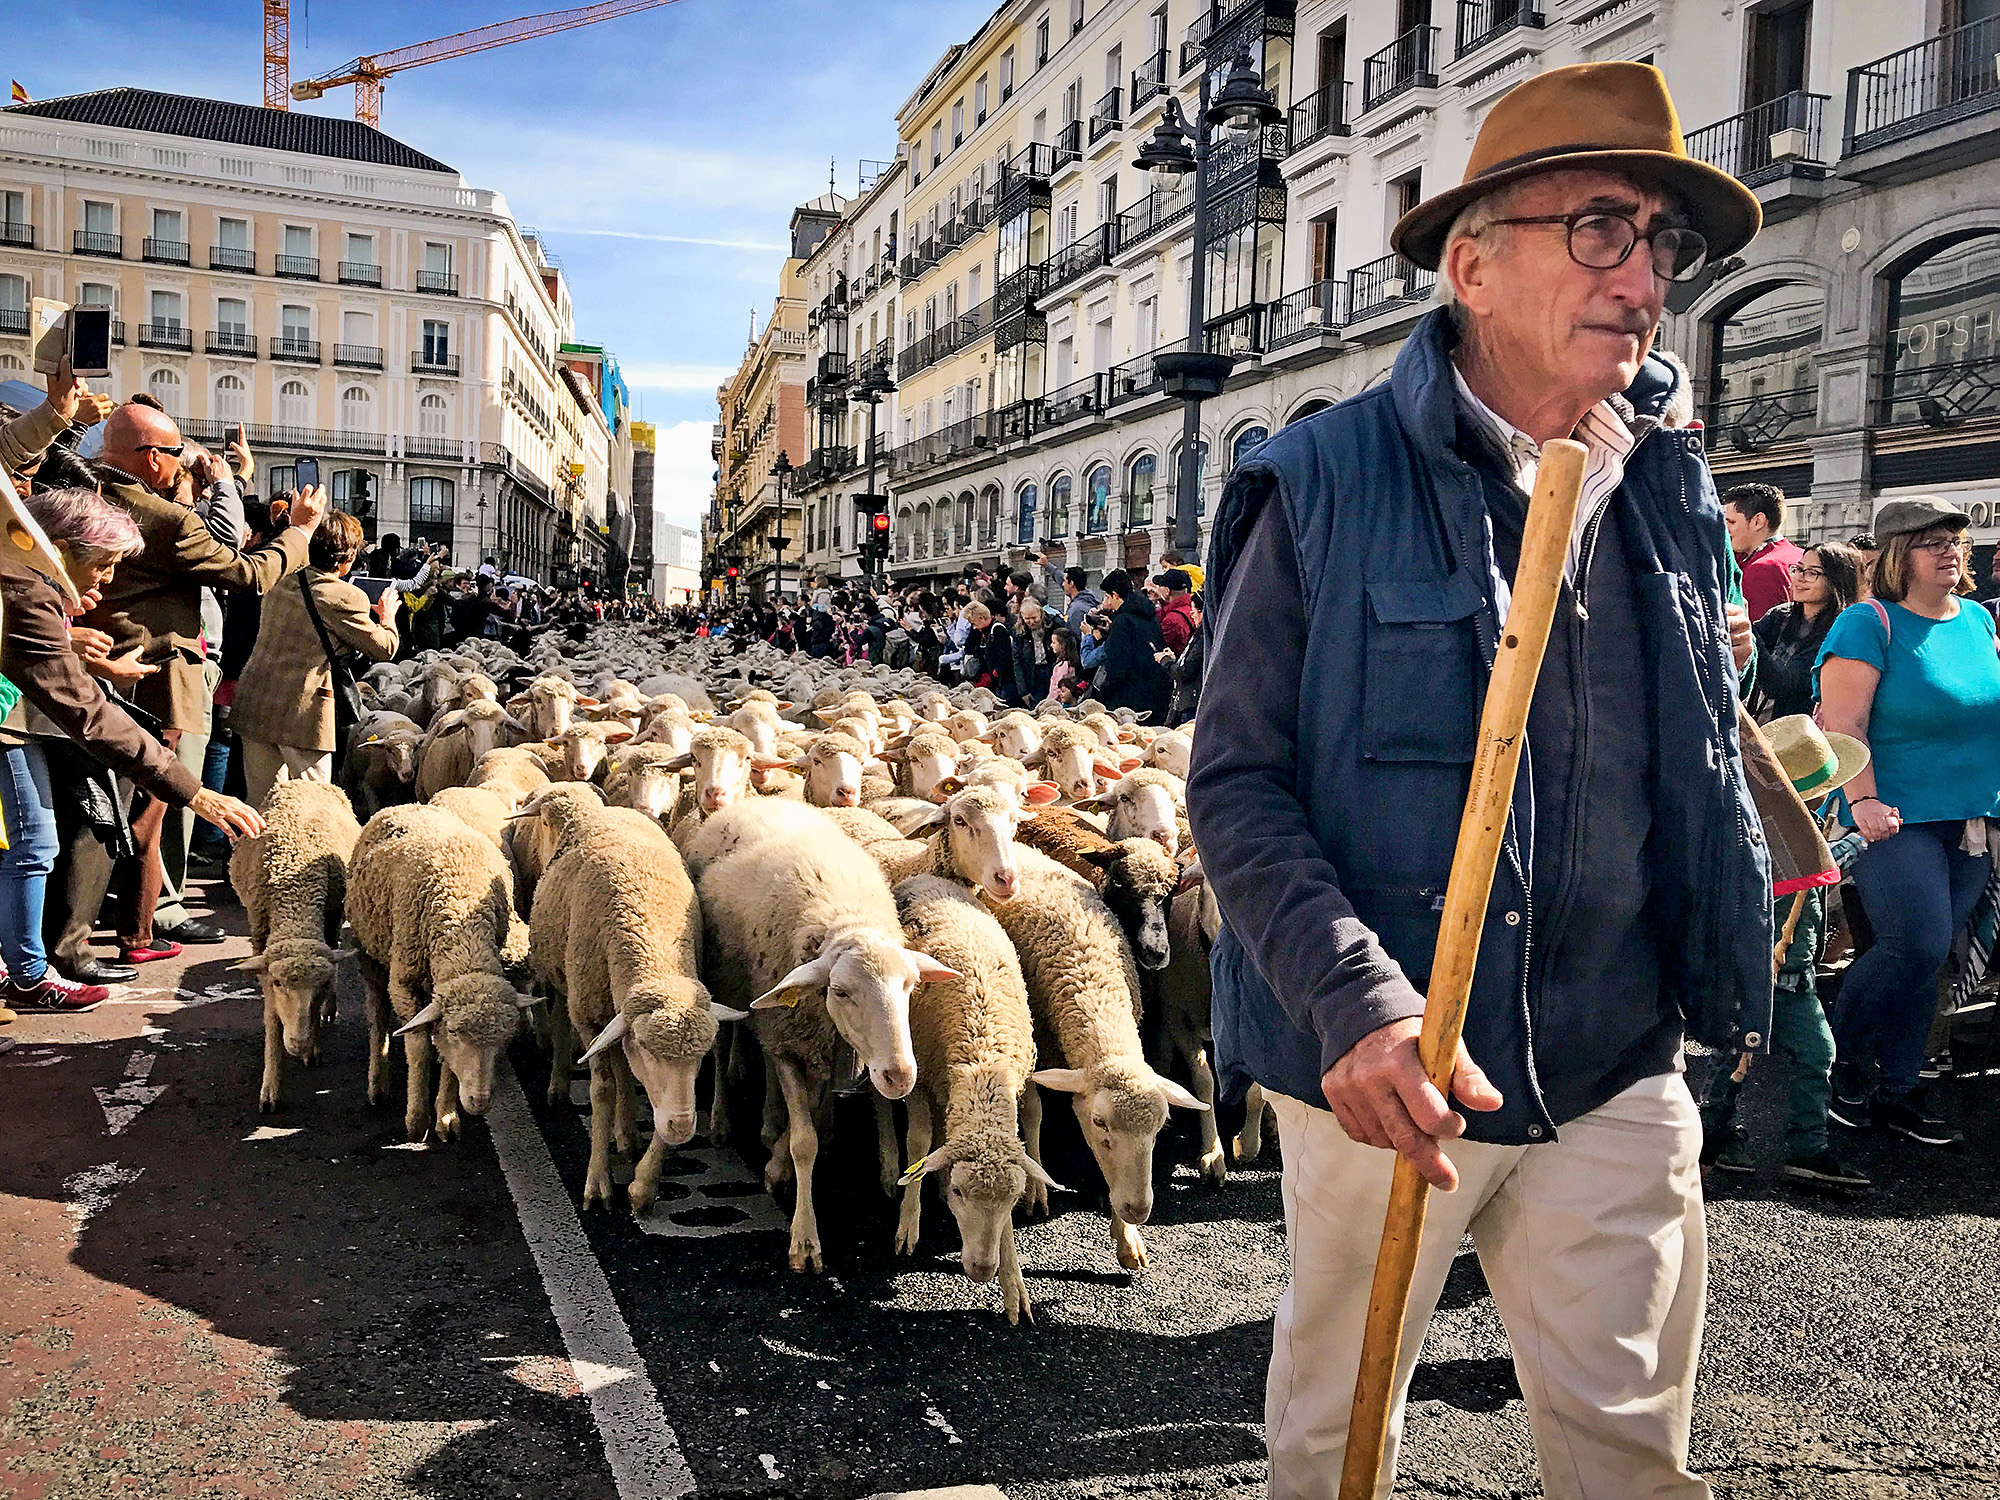 Shepherd and sheep move through town